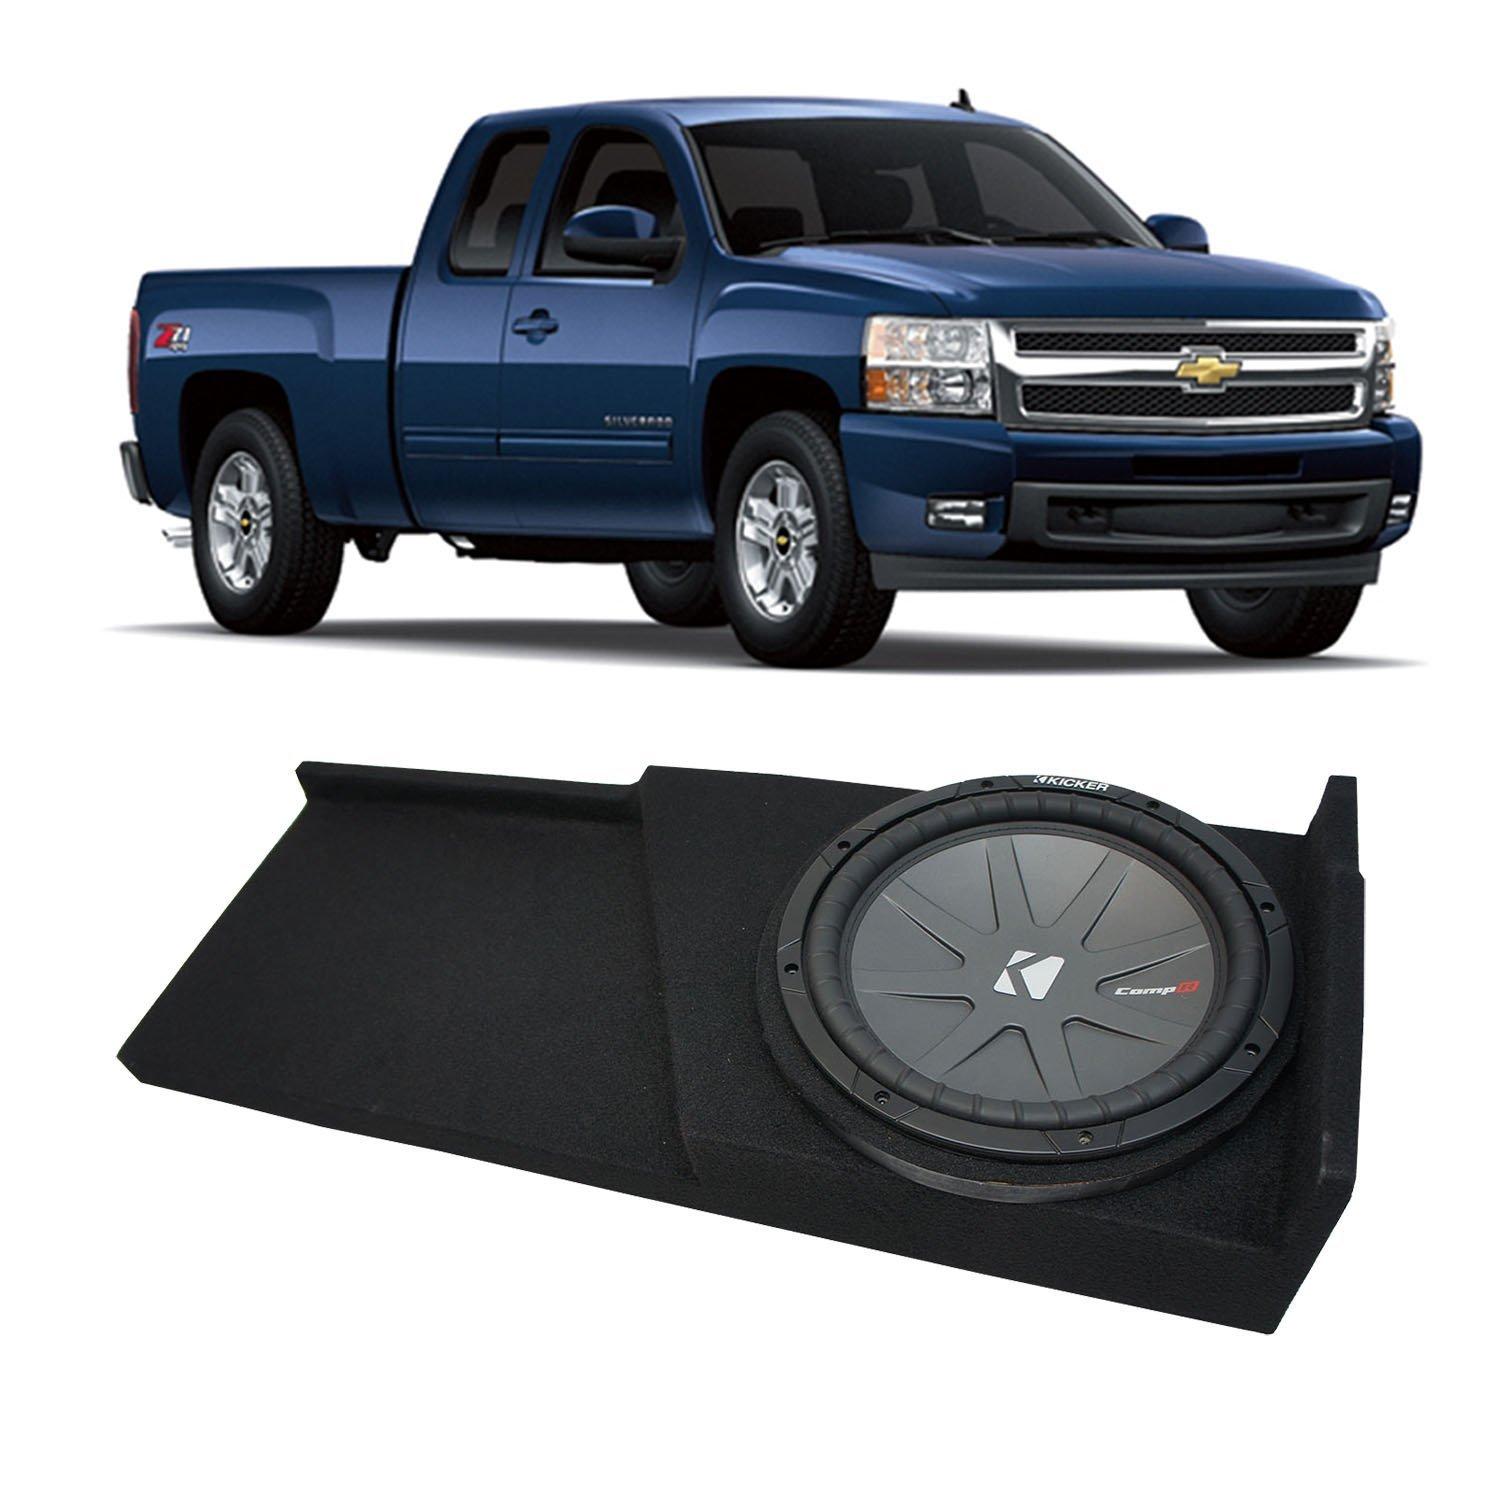 2007-2013 Chevy Silverado Ext Cab Truck Kicker CompR CWR10 Single 10 Sub Box Enclosure - Final 2 Ohm